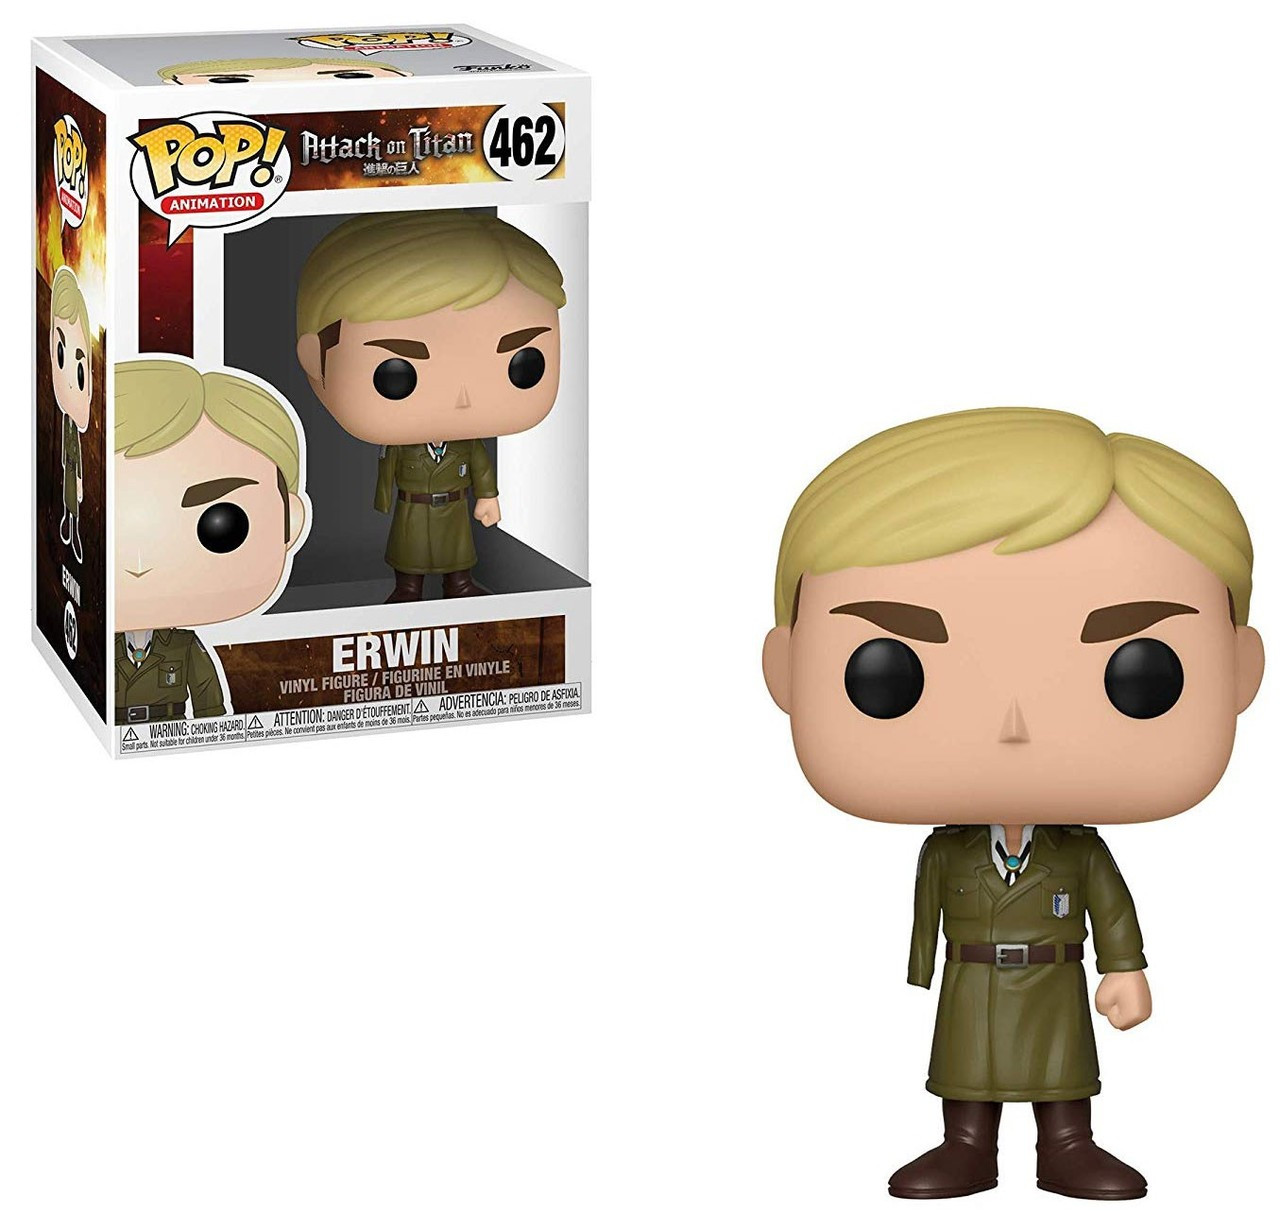 Animation Erwin Vinyl Figure #462 [One-Armed